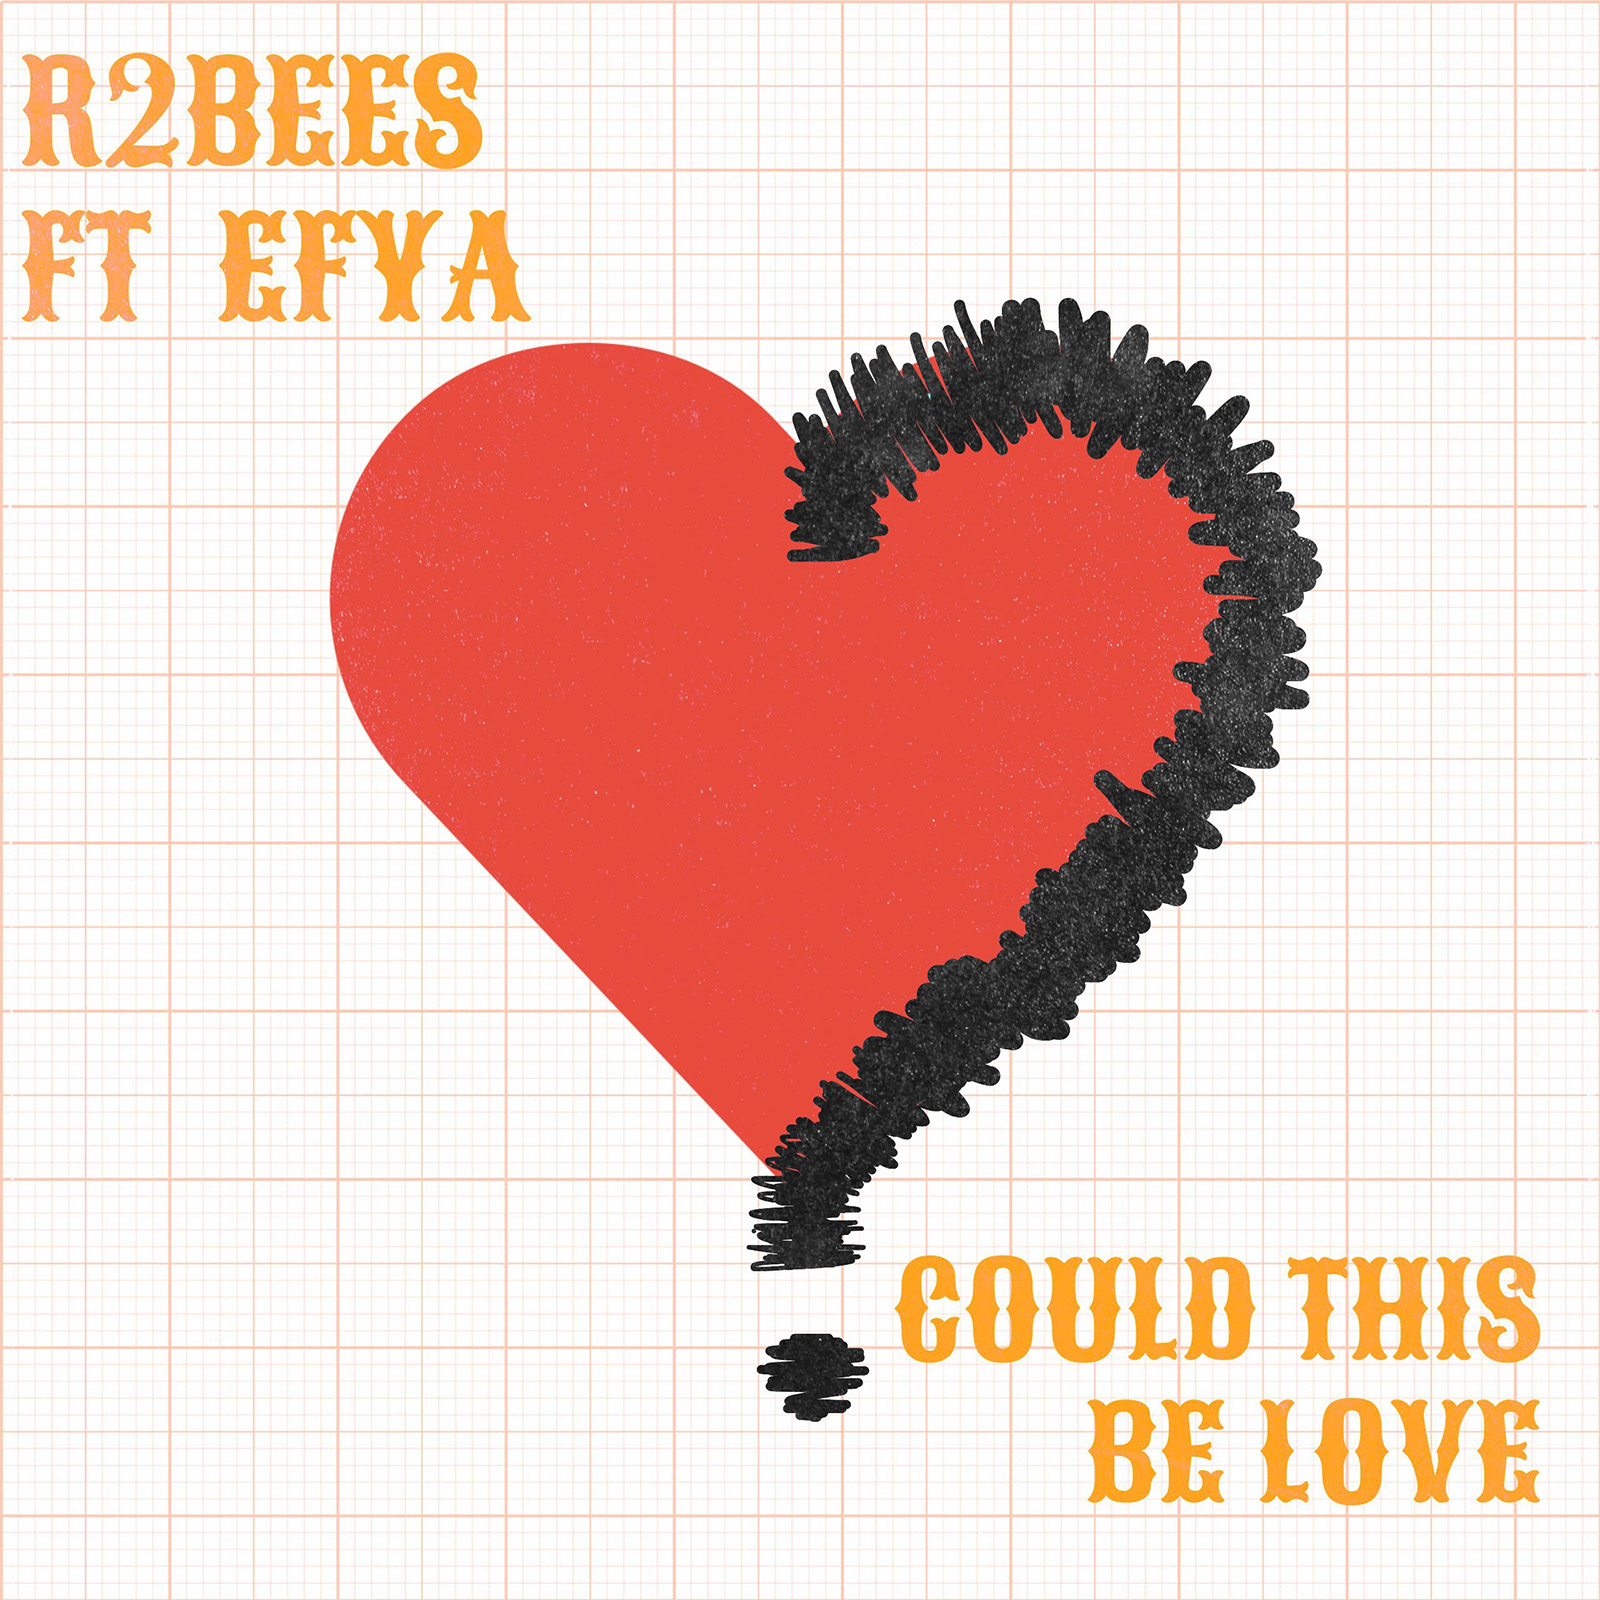 Could This Be Love by R2bees feat. Efya